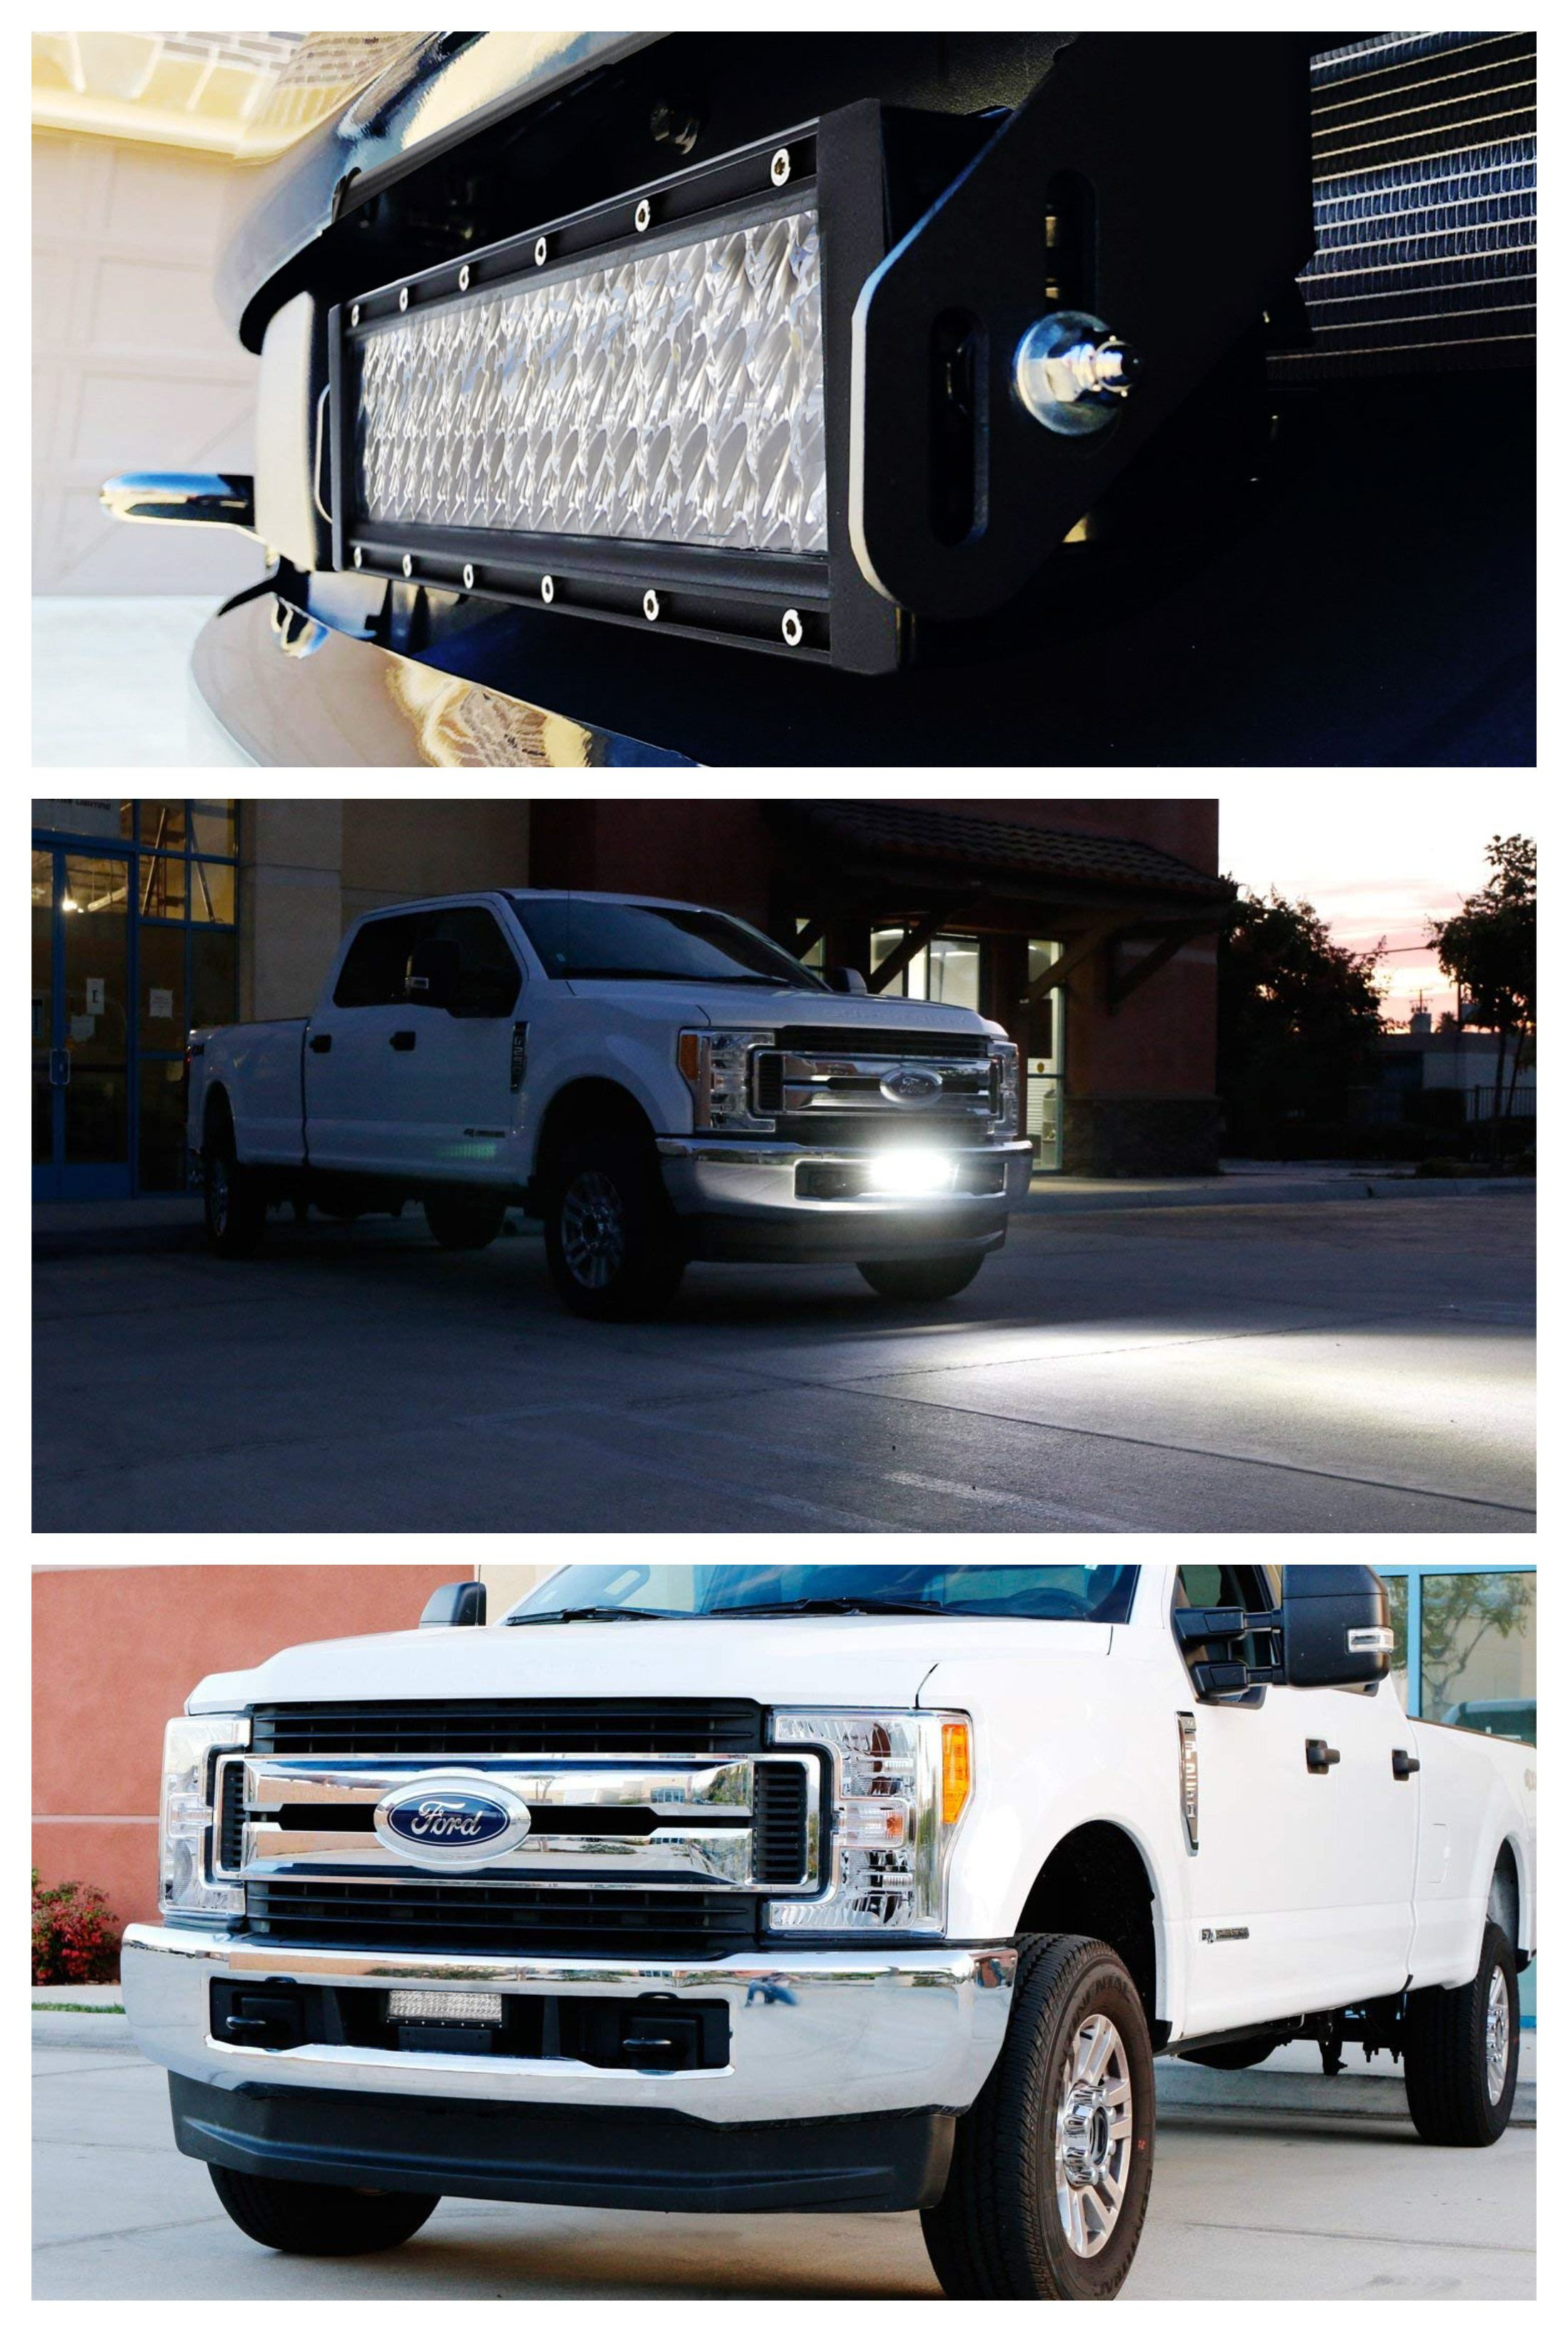 Lower Grille Mount 12 Led Light Bar Kit For 2017 Up Ford F250 F350 F450 1 High Power Led Lightbar Bumper Mounting Brackets Wiring Switch Led Light Bars F250 Ford F250